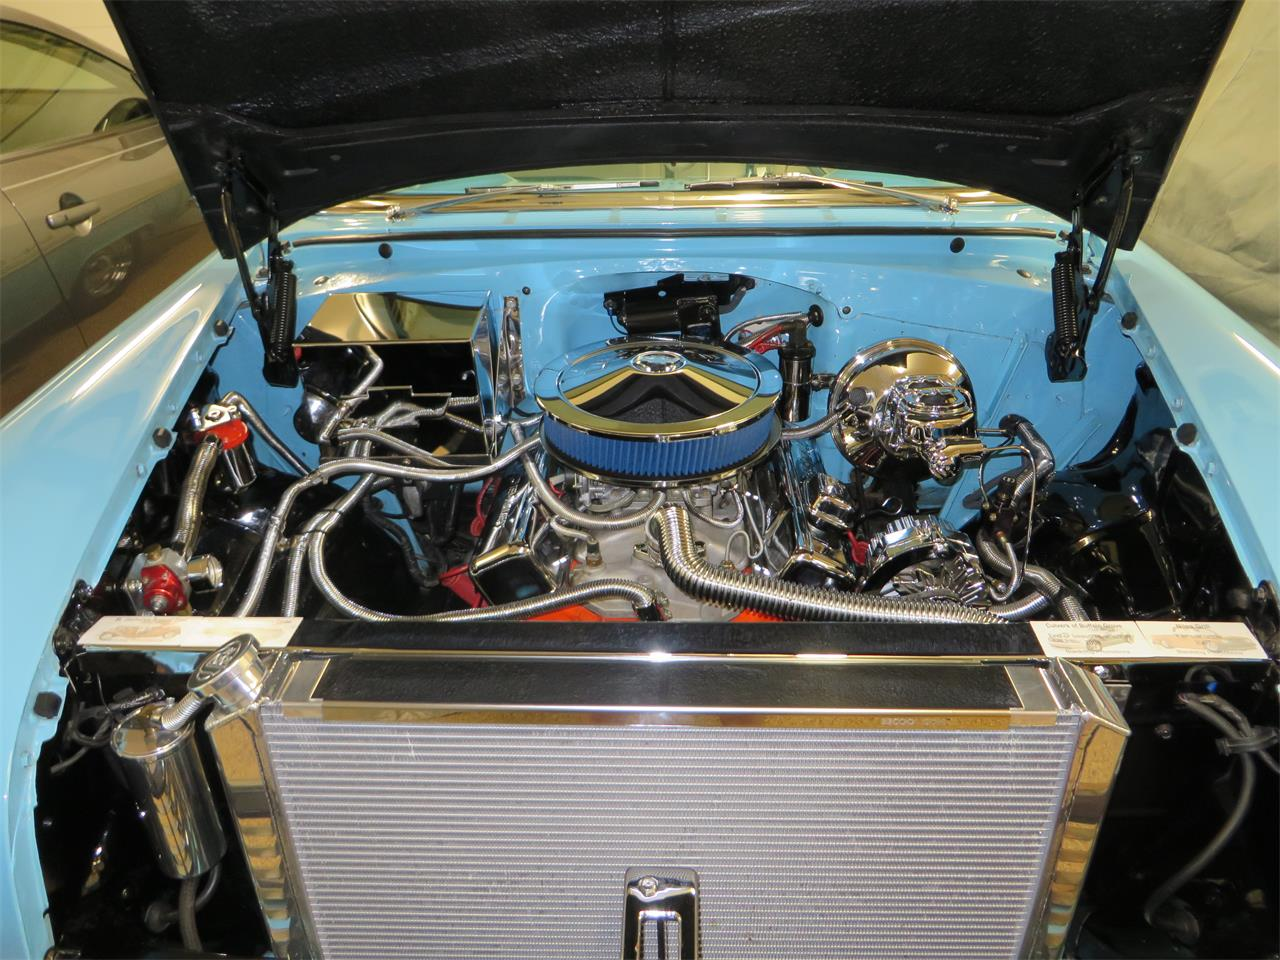 Large Picture of 1955 Chevrolet Bel Air located in Chicago Illinois - $49,900.00 Offered by a Private Seller - H9N1